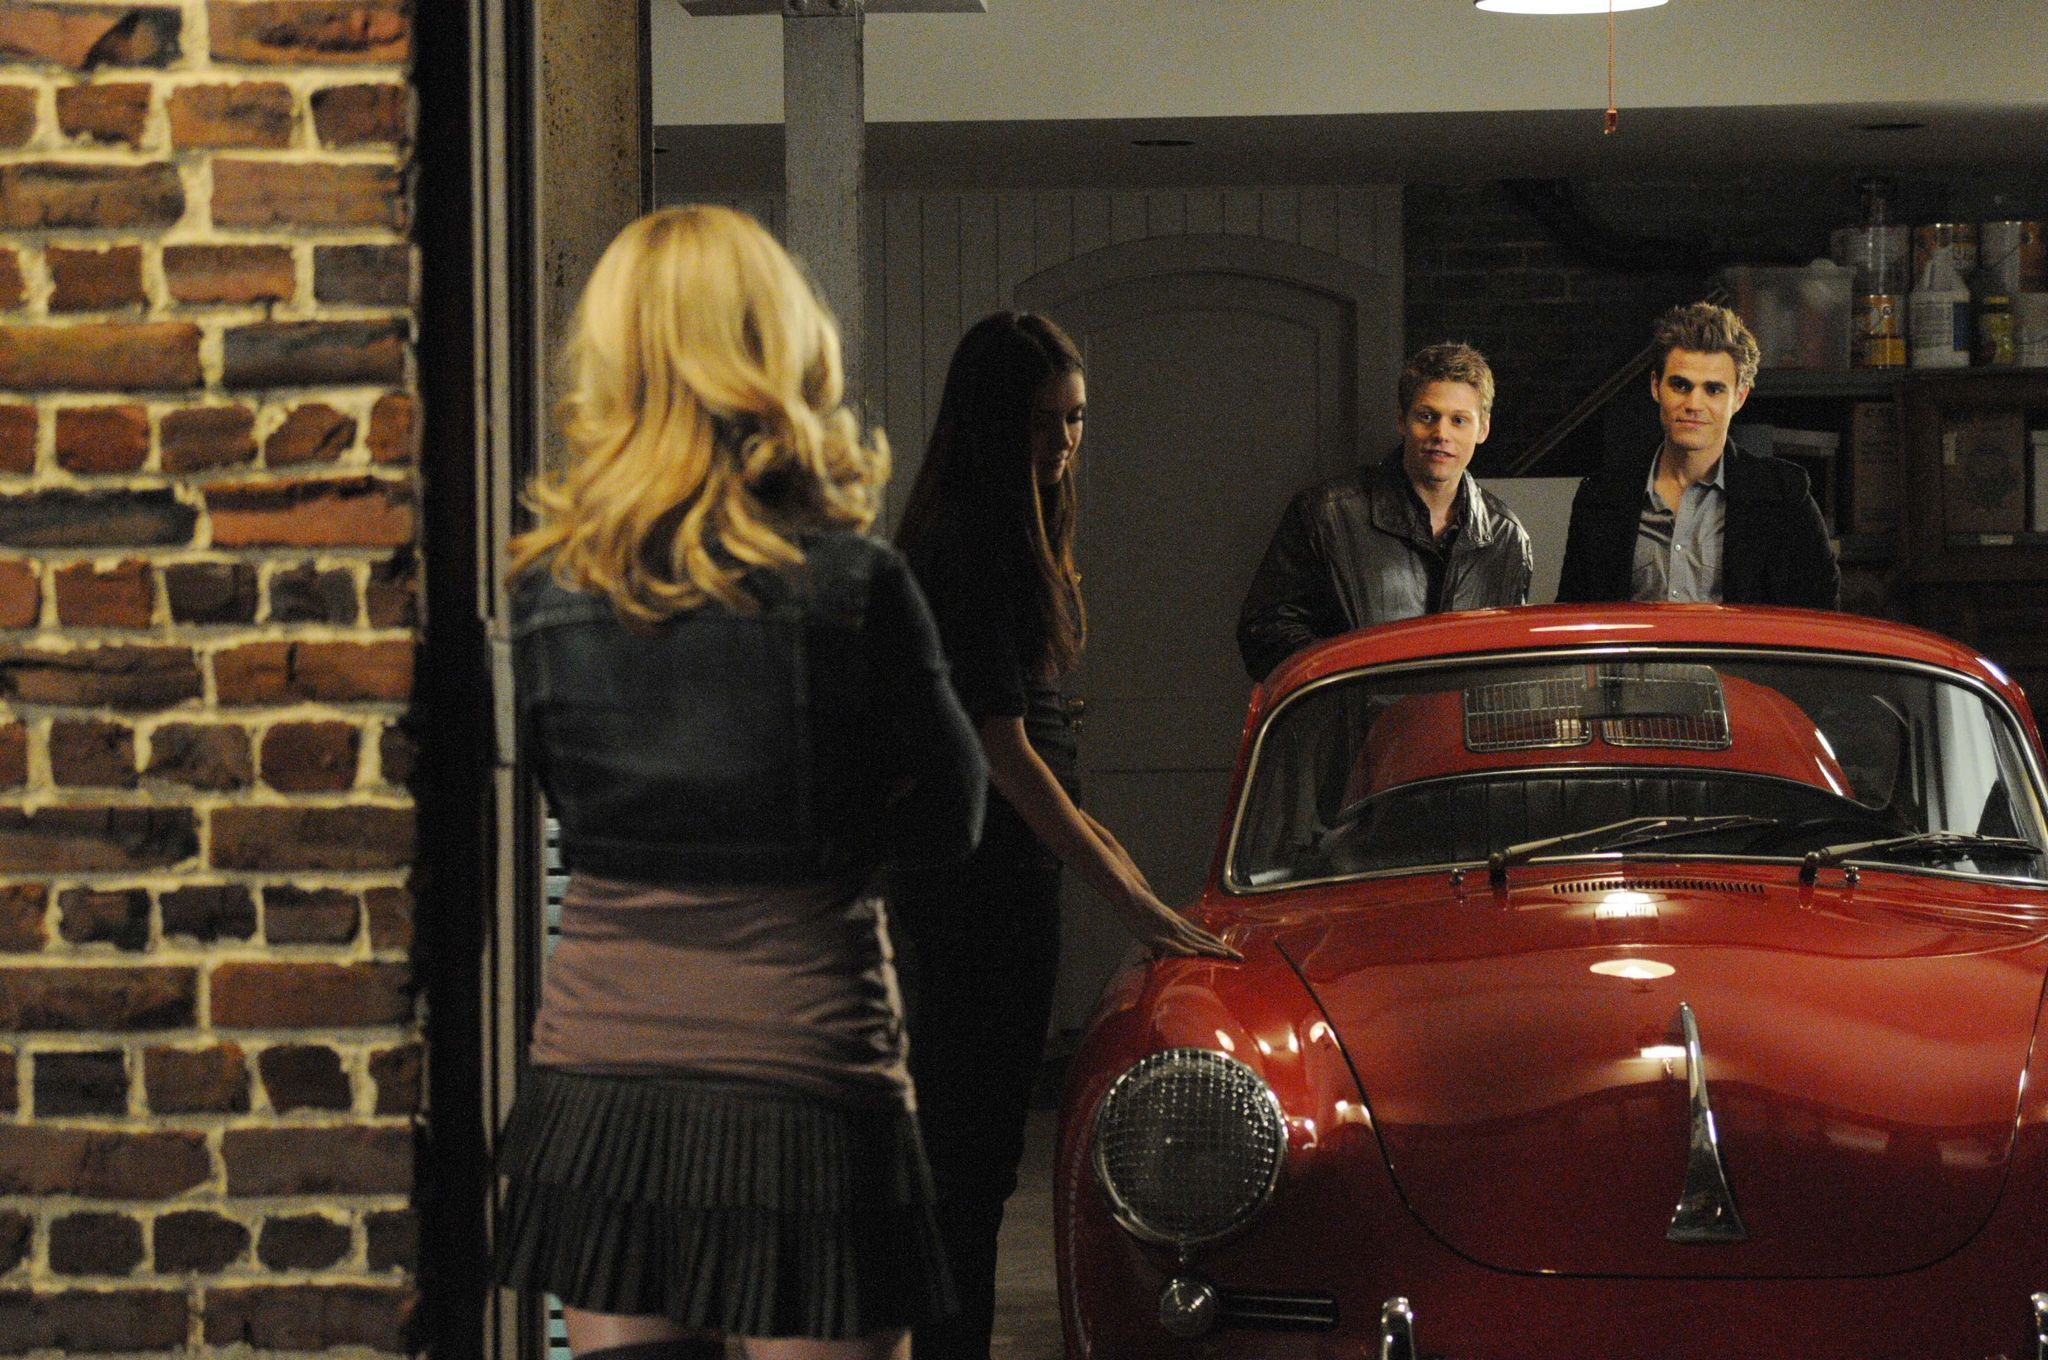 New promo foto for 1.16 There Goes The Neighborhood